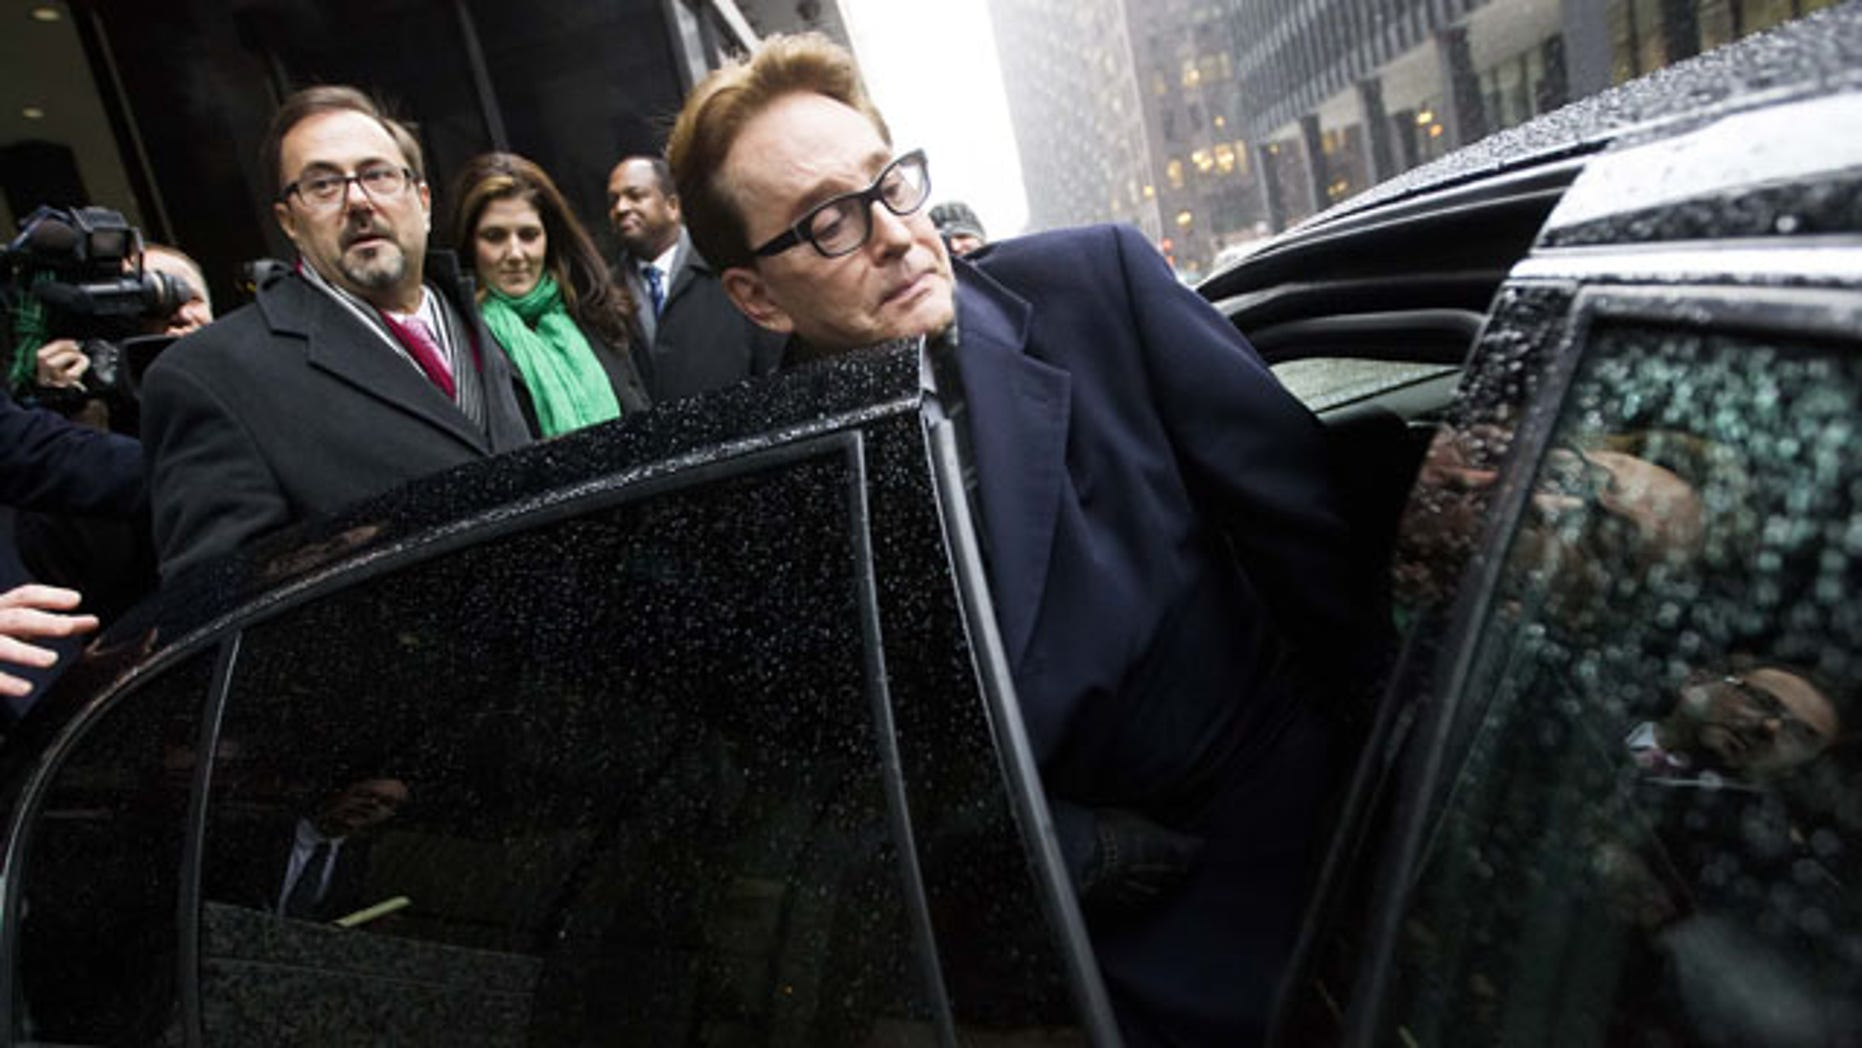 January 14, 2014: H. Ty Warner, the billionaire who created Beanie Babies, gets into a car outside the federal building in Chicago after being sentenced to two years of probation, but no prison time, for tax evasion on $25 million in income he had in Swiss bank accounts. (AP Photo/Andrew A. Nelles)